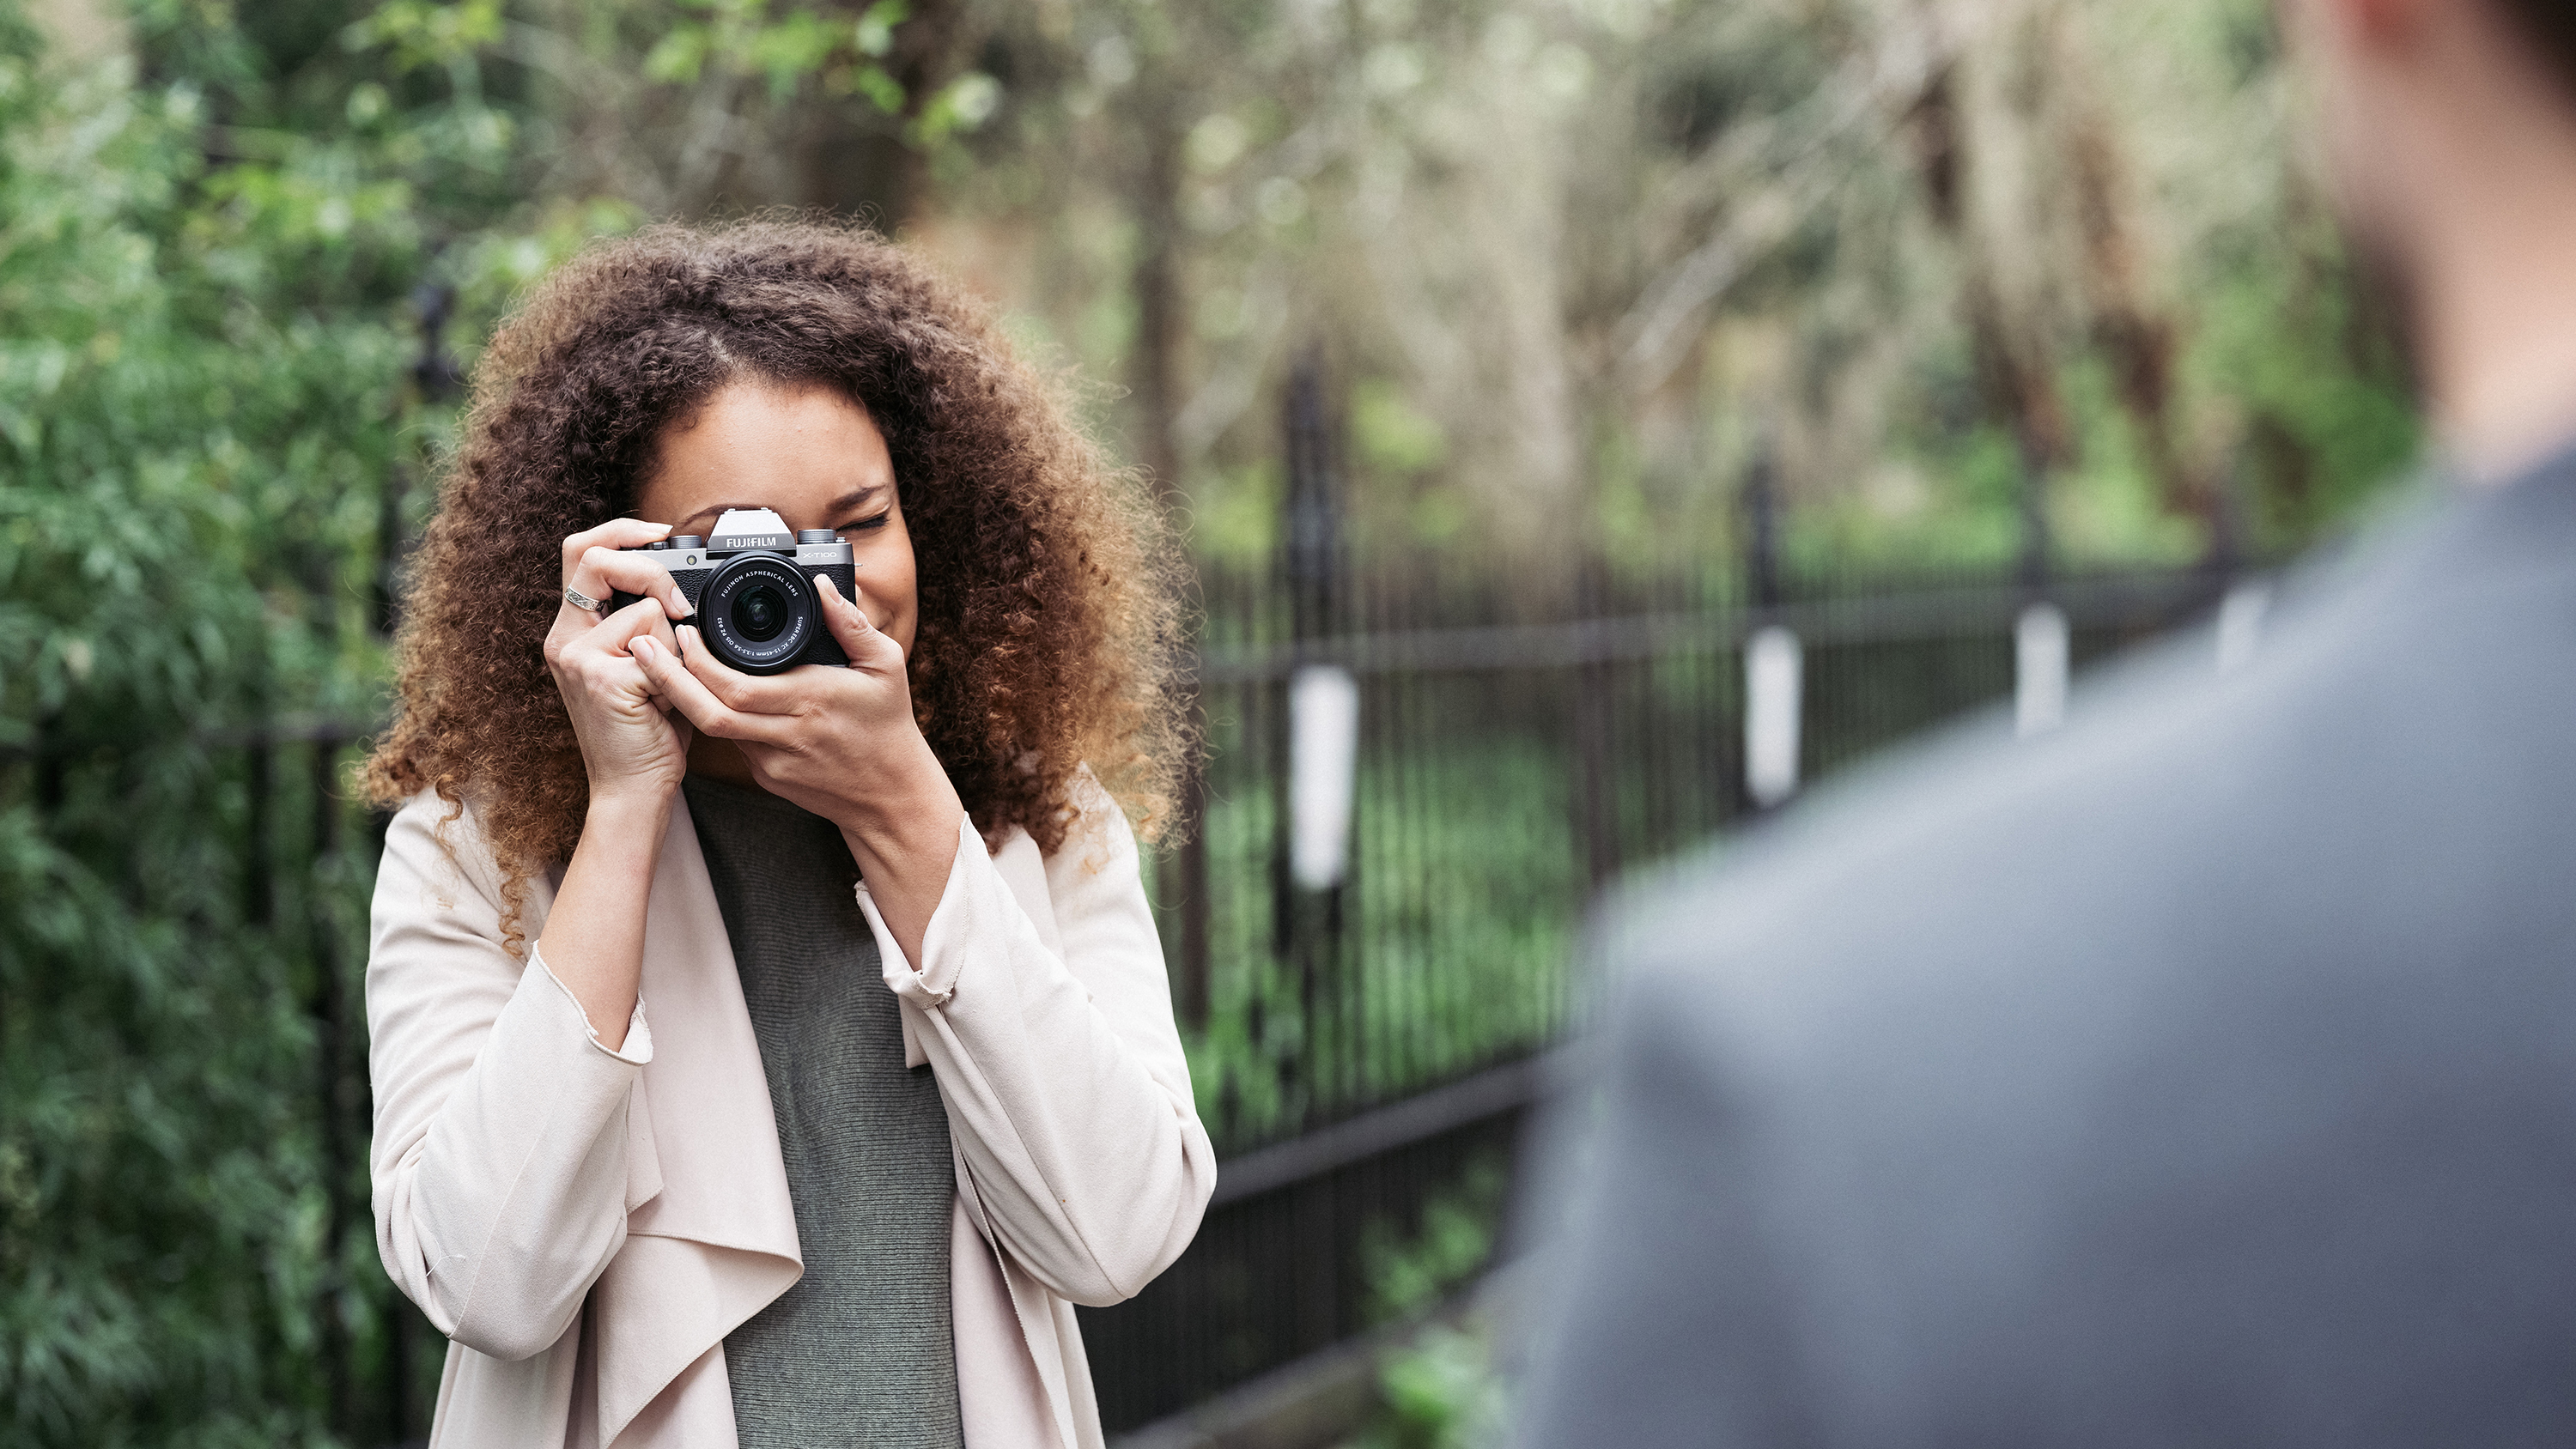 Best beginner mirrorless camera 2019: 10 budget options for new